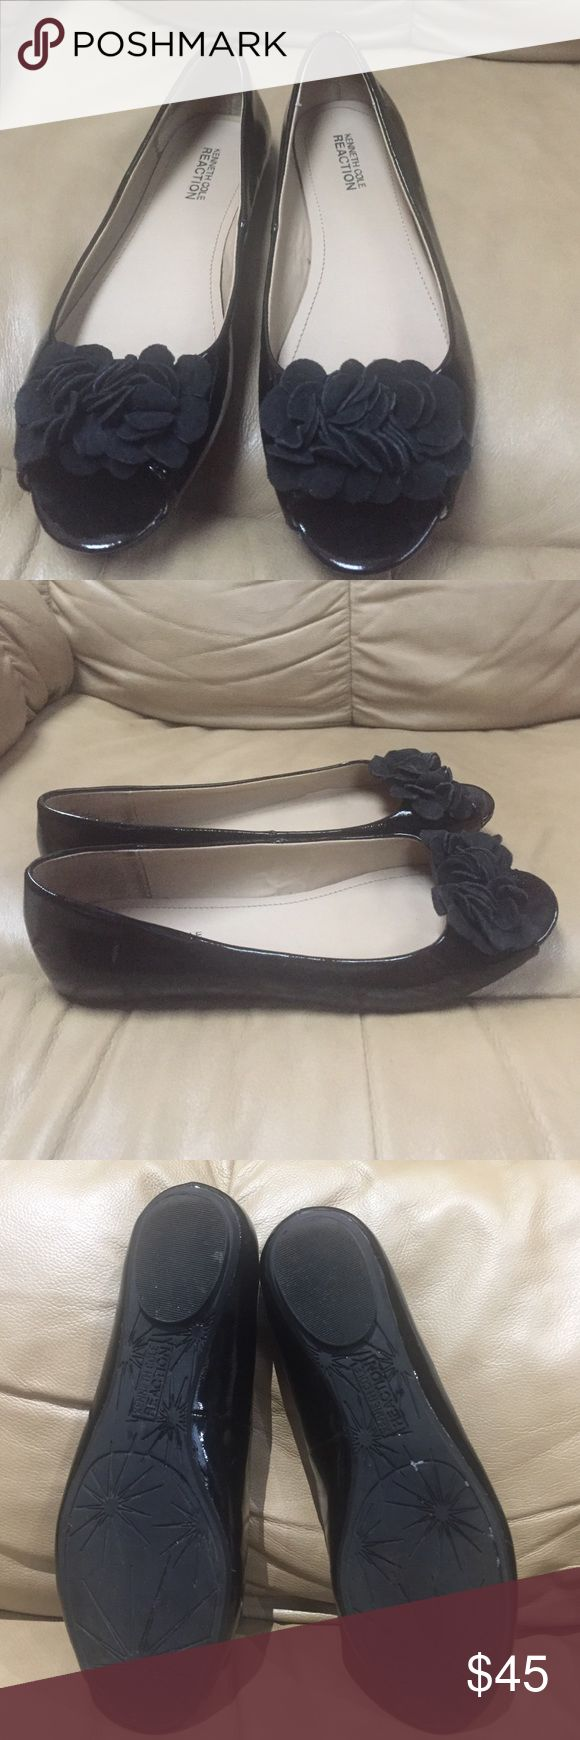 Kenneth Cole Reaction black open toe flats. Kenneth Cole Reaction open toe flats. Size 7 patent leather with velvet look  at like roses . Like new, worn only once. Kenneth Cole Shoes Flats & Loafers